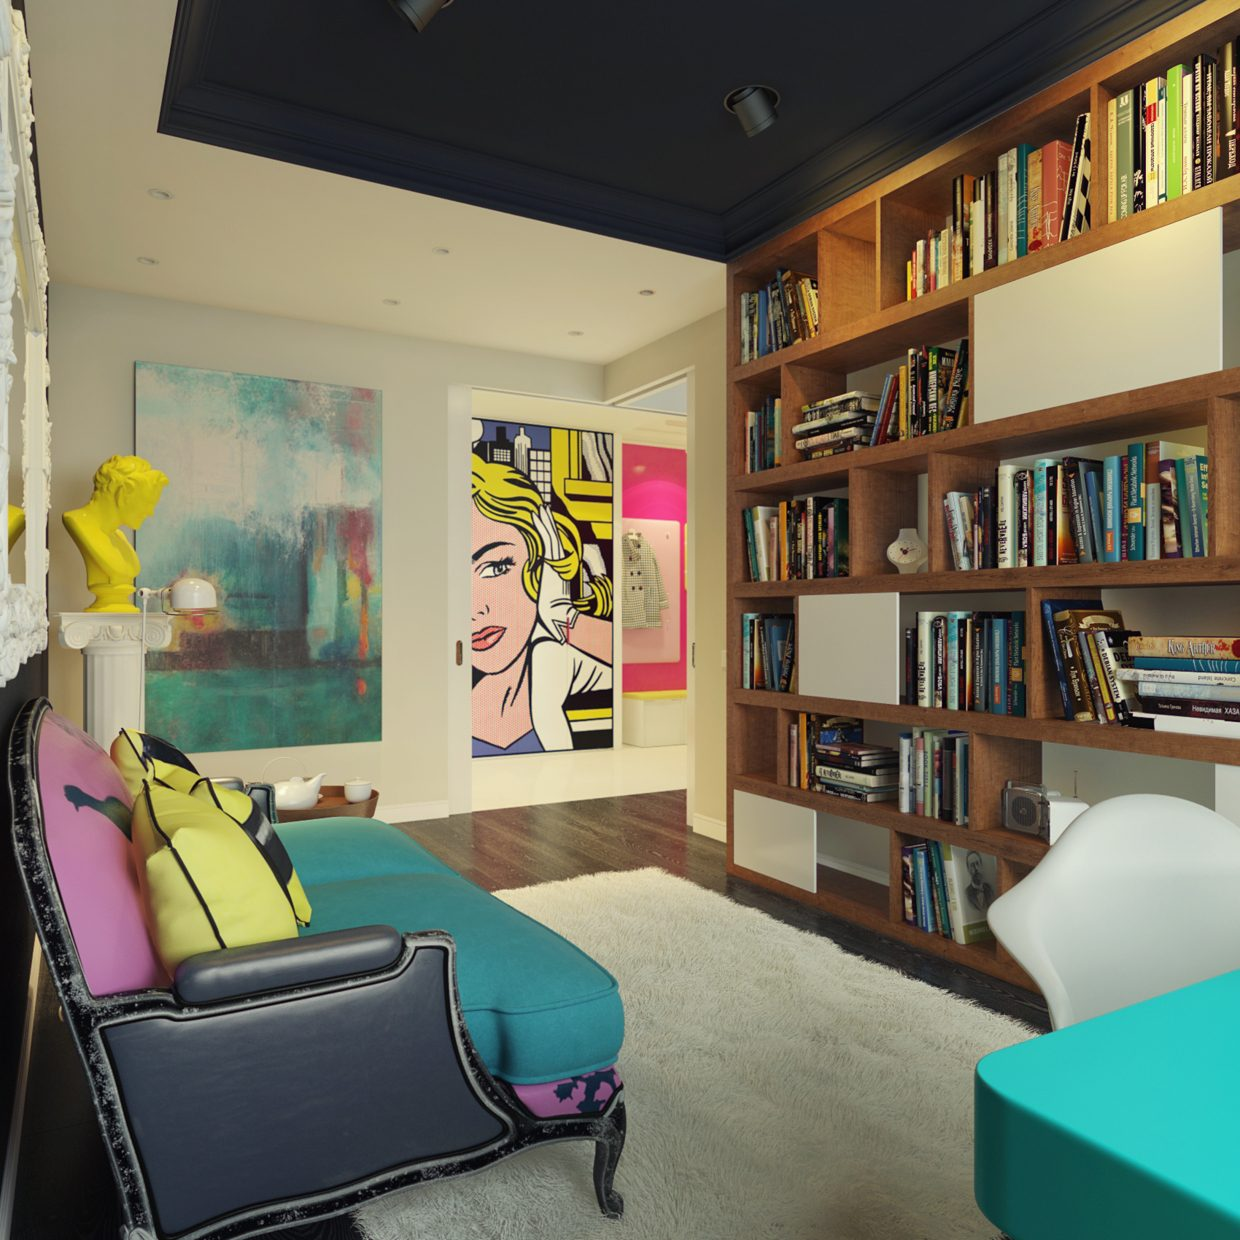 http://cdn.home-designing.com/wp-content/uploads/2013/08/pop-art-and-shelving-8.jpg